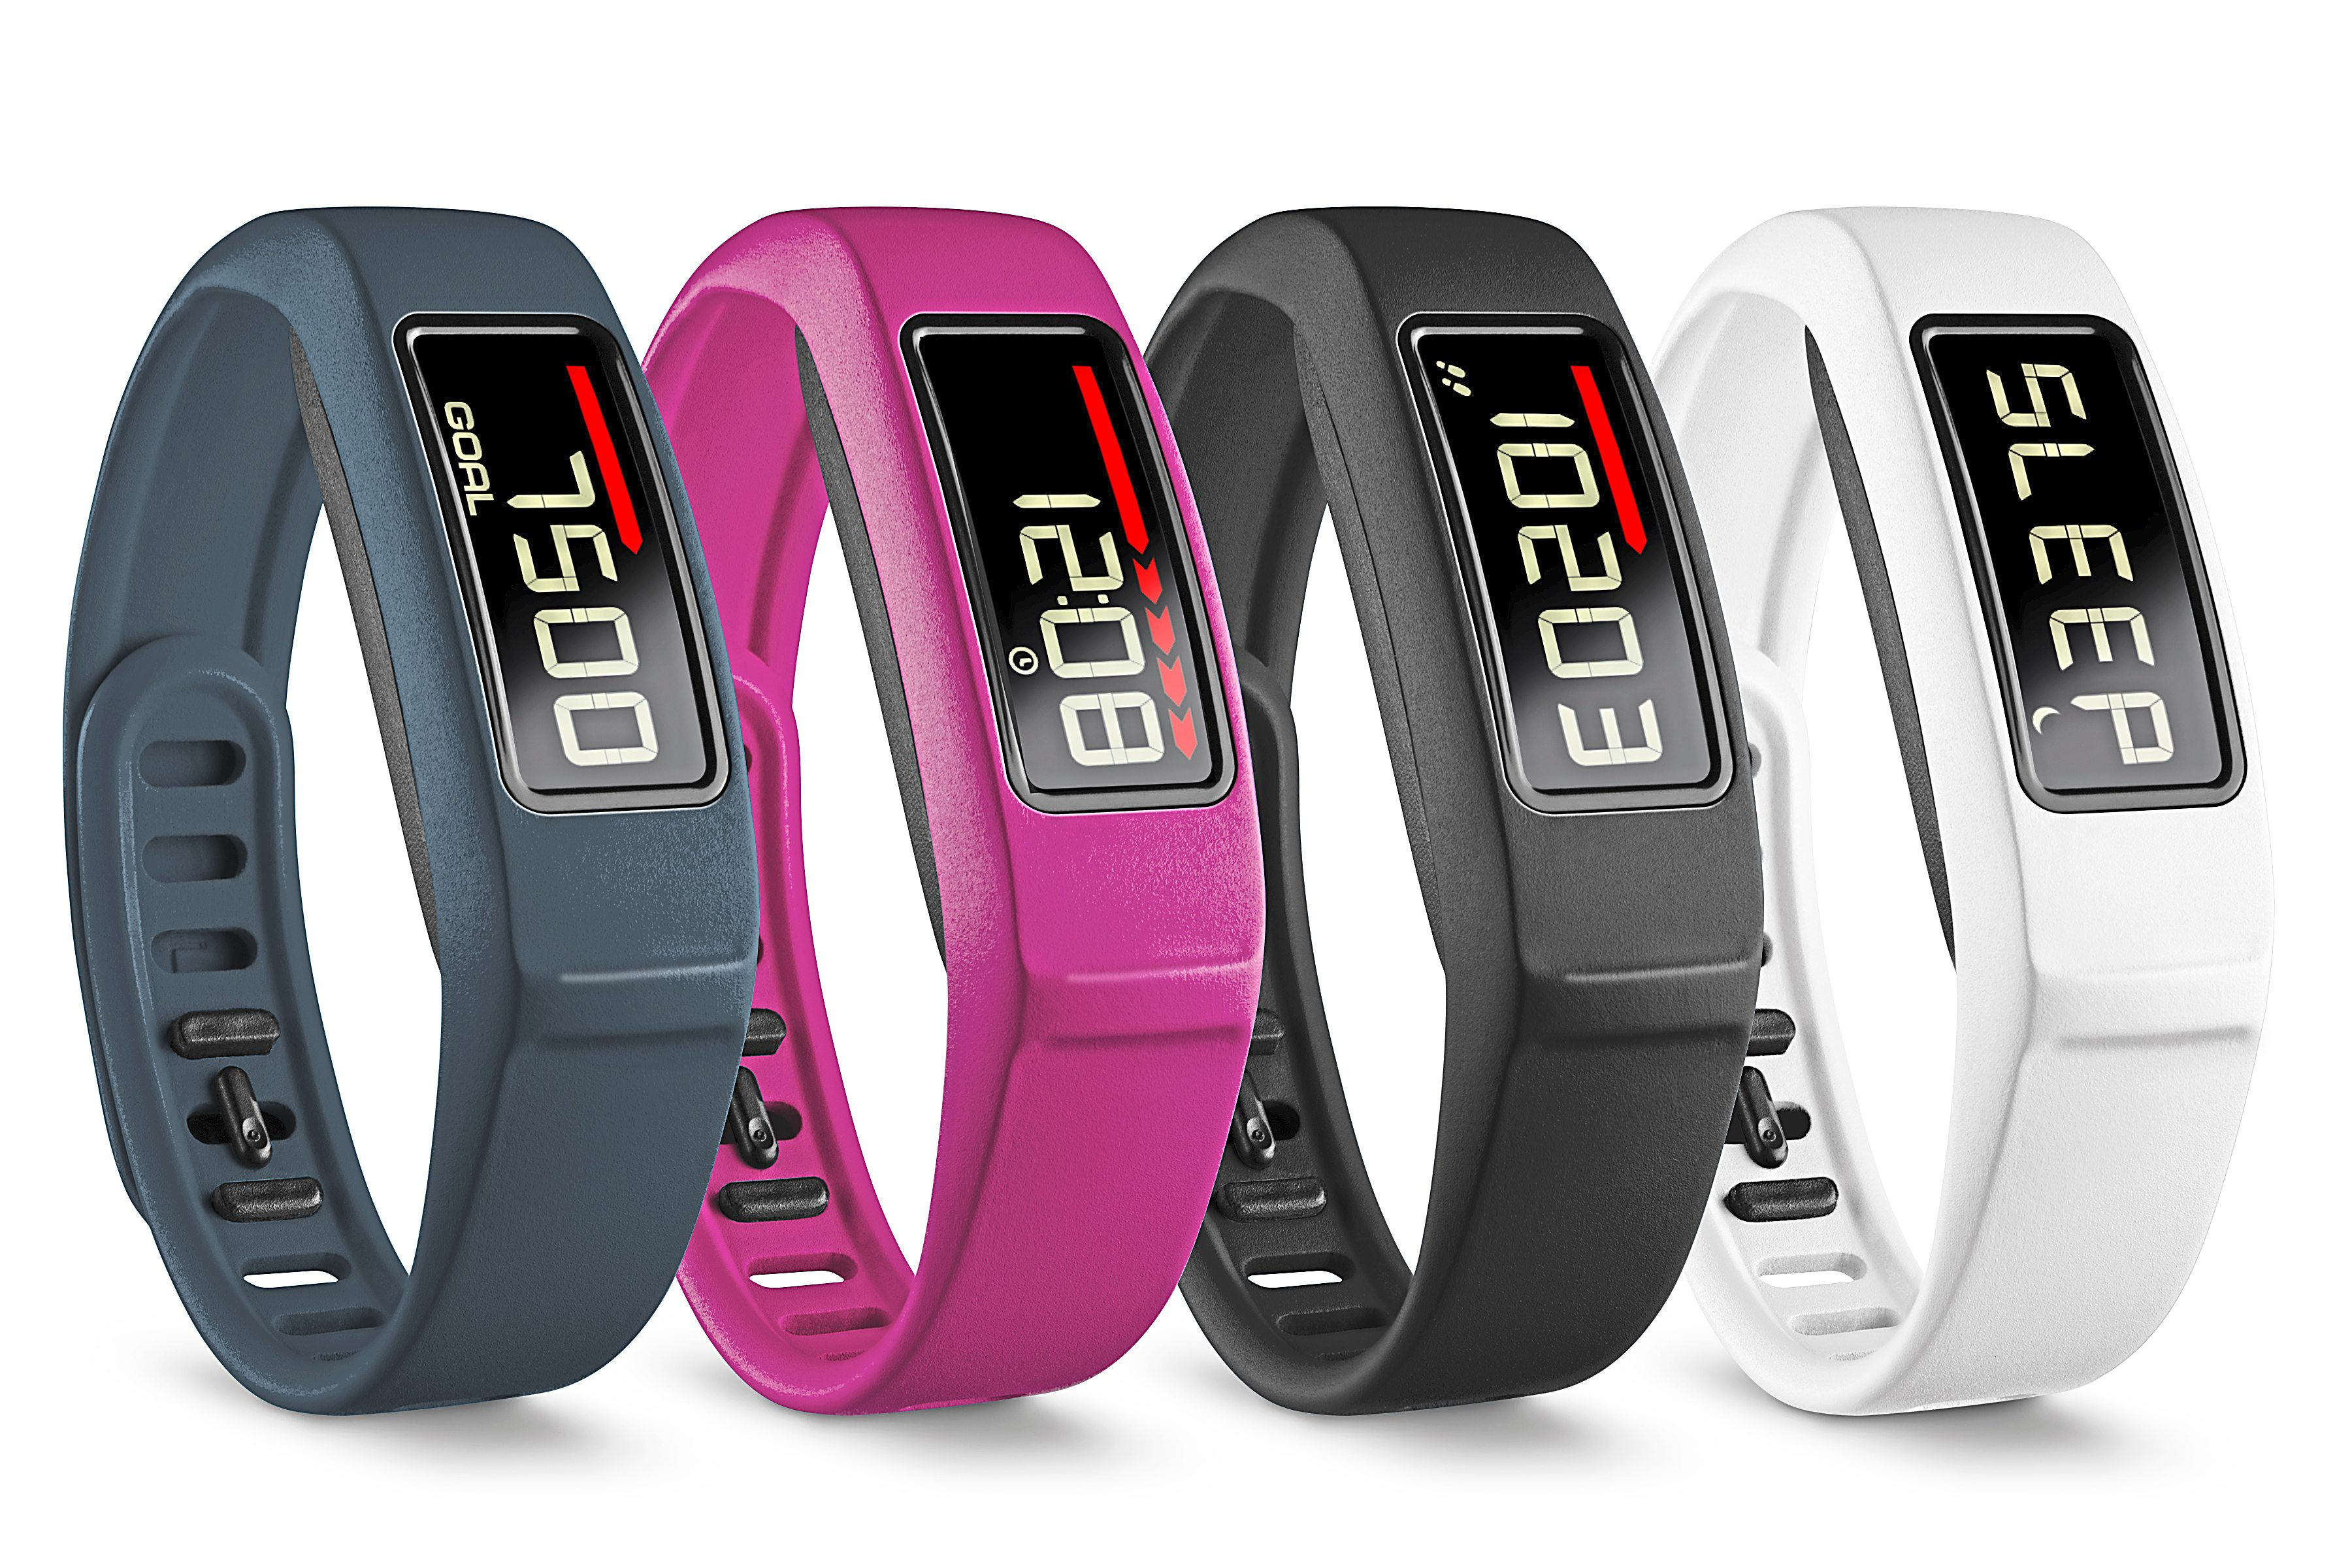 Track yourself: the Garmin Vivofit 2 is a pretty full-featured fitness tracker